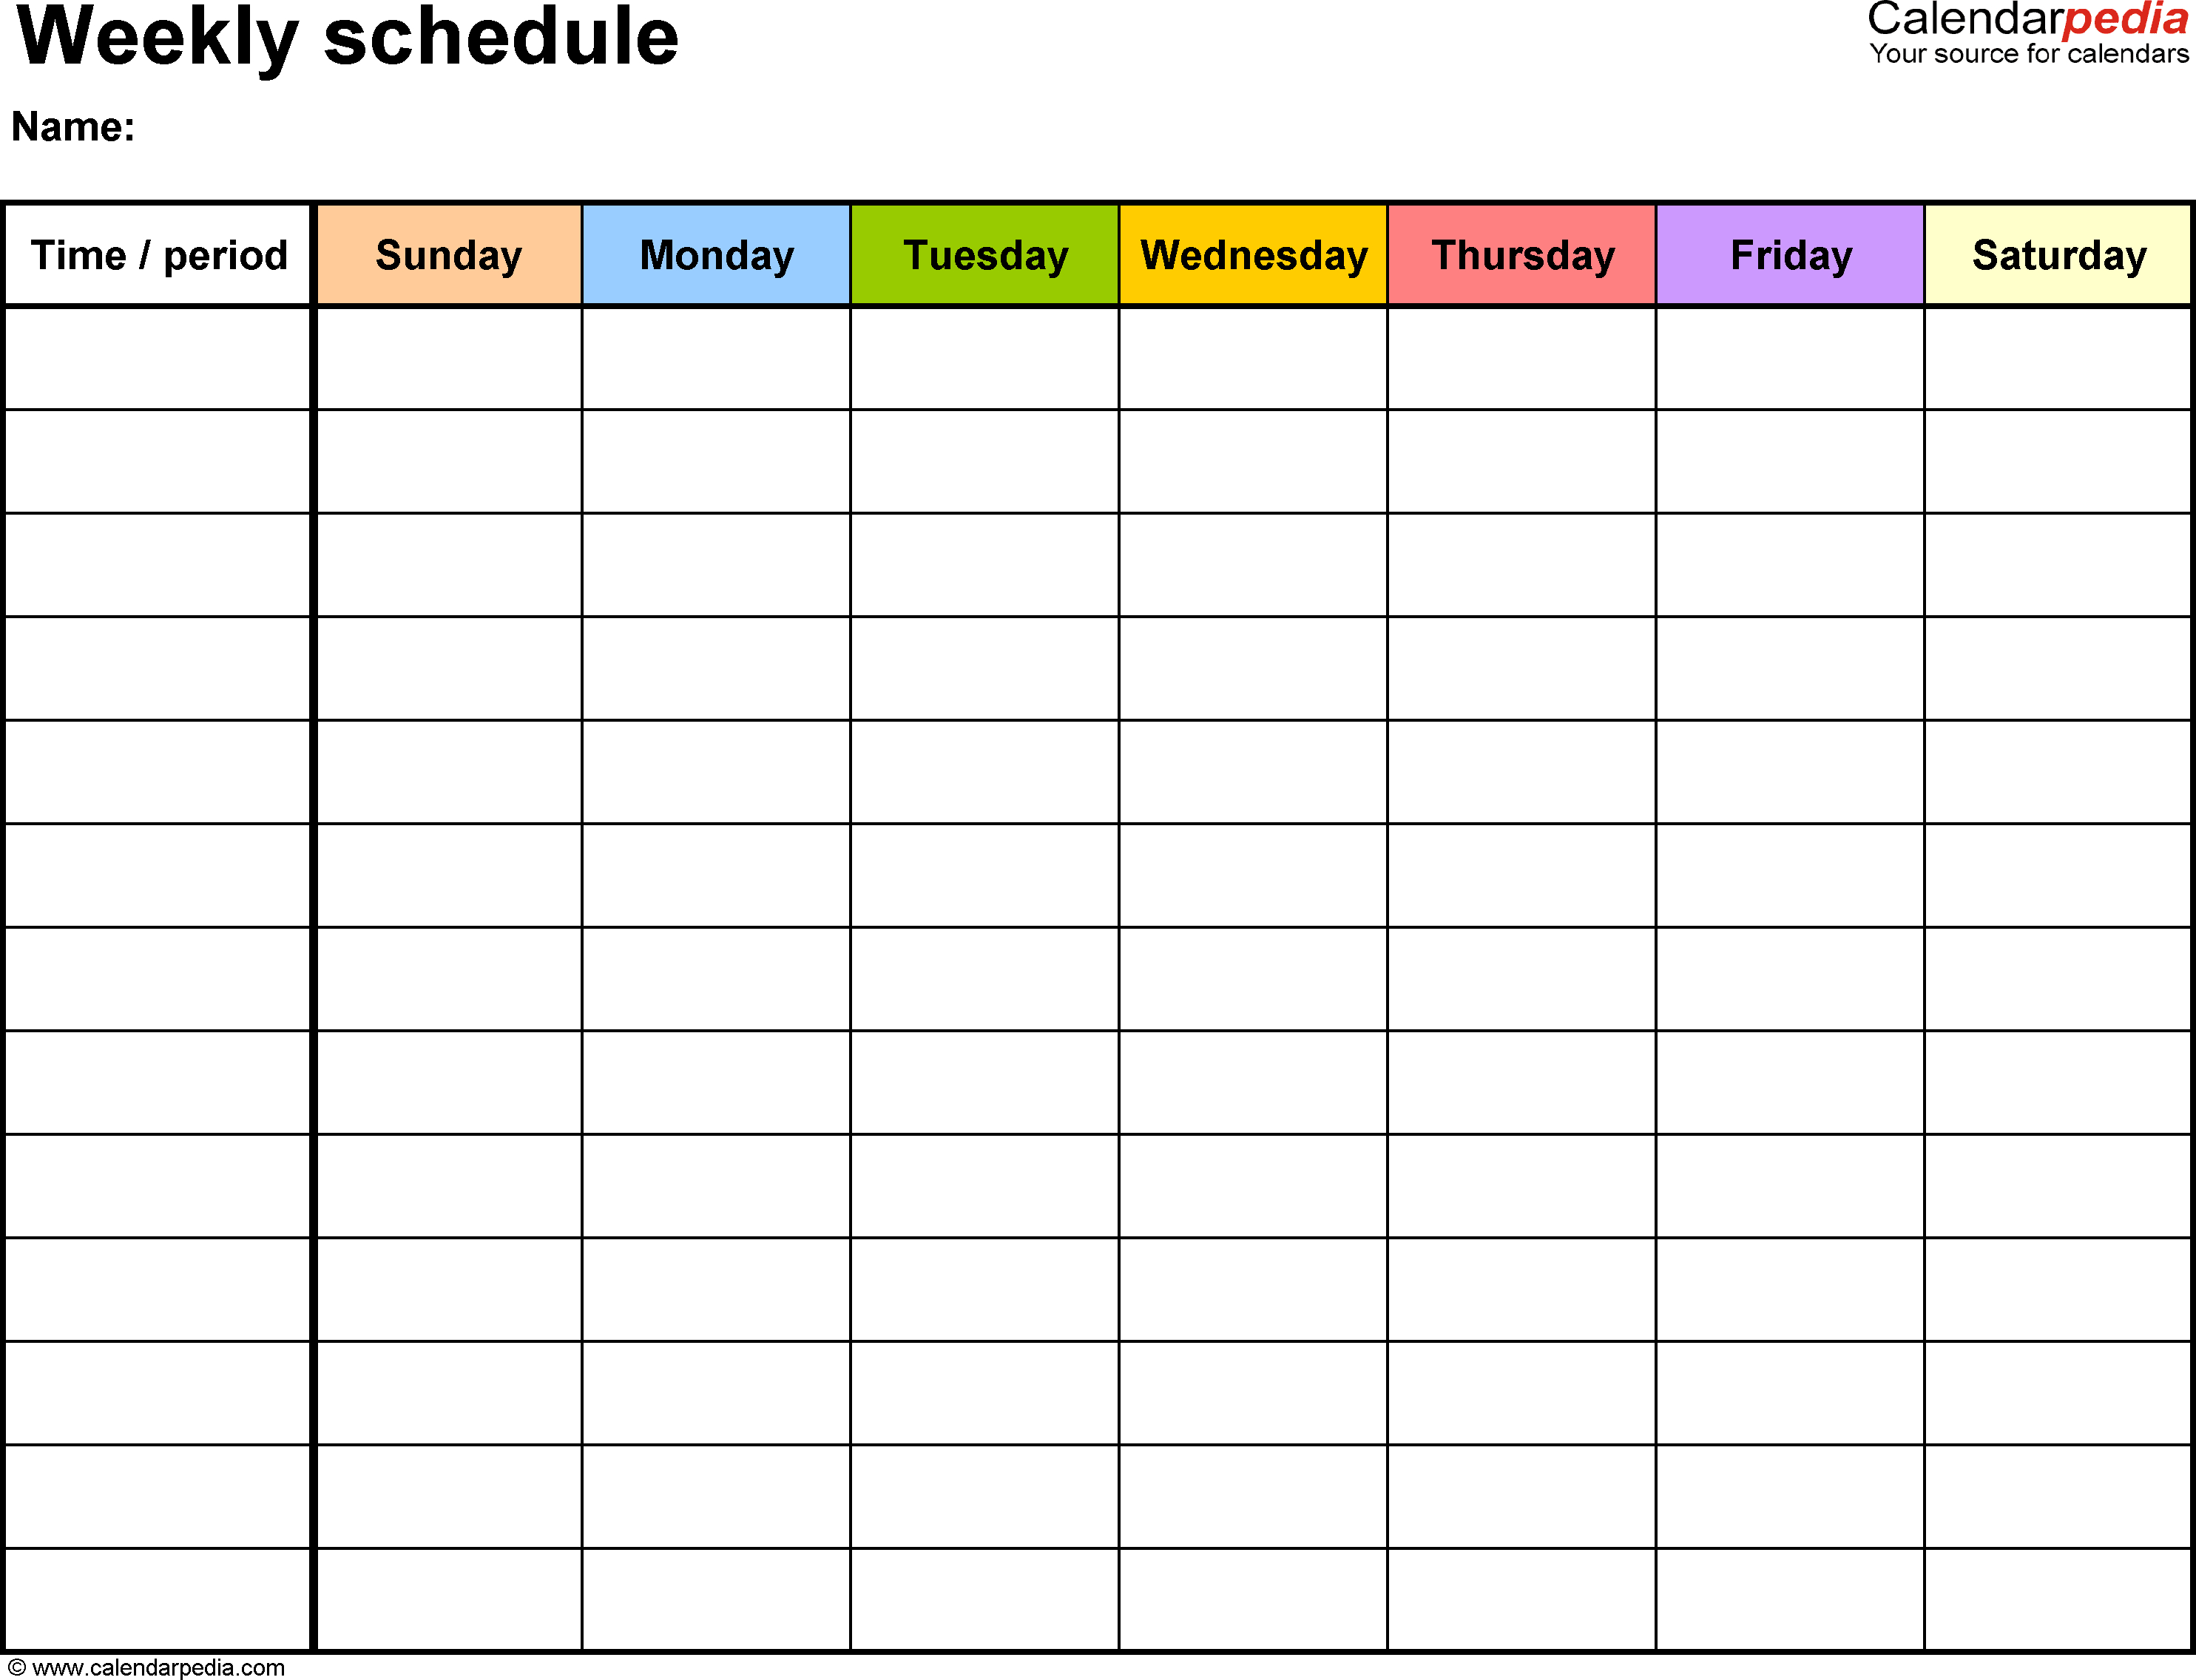 Free Weekly Schedule Templates For Word - 18 Templates intended for Daily Planner Template Printable Free